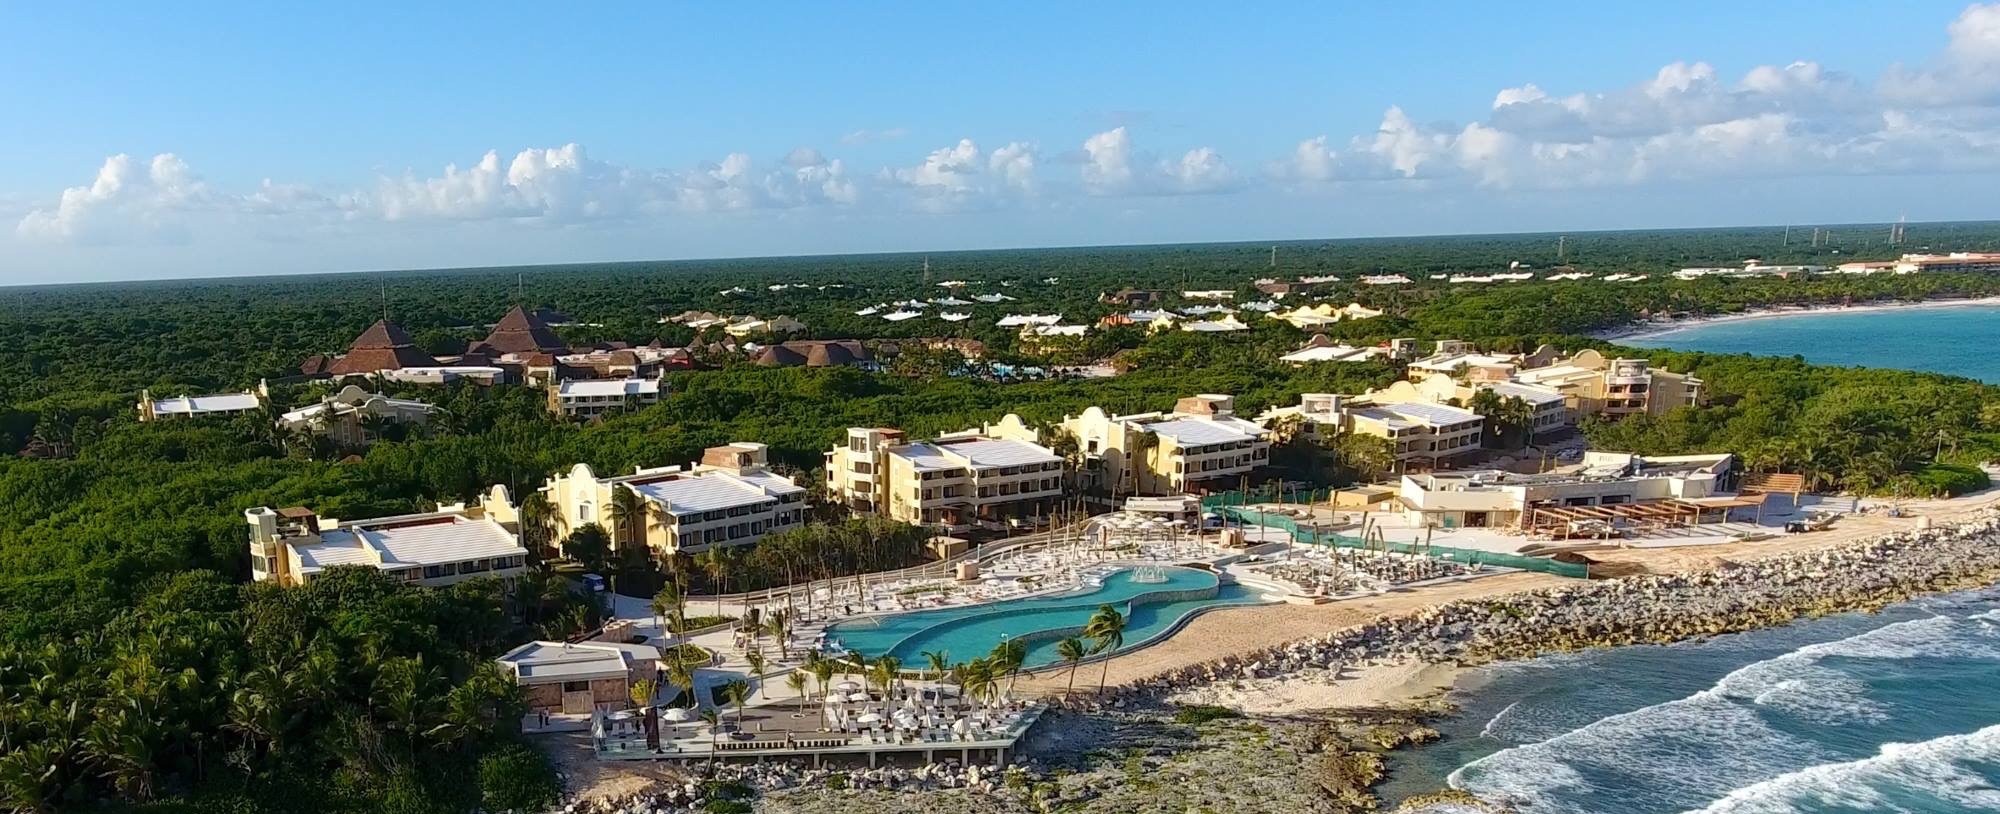 Grand Palladium Resort And Spa Riviera Maya Mexico The